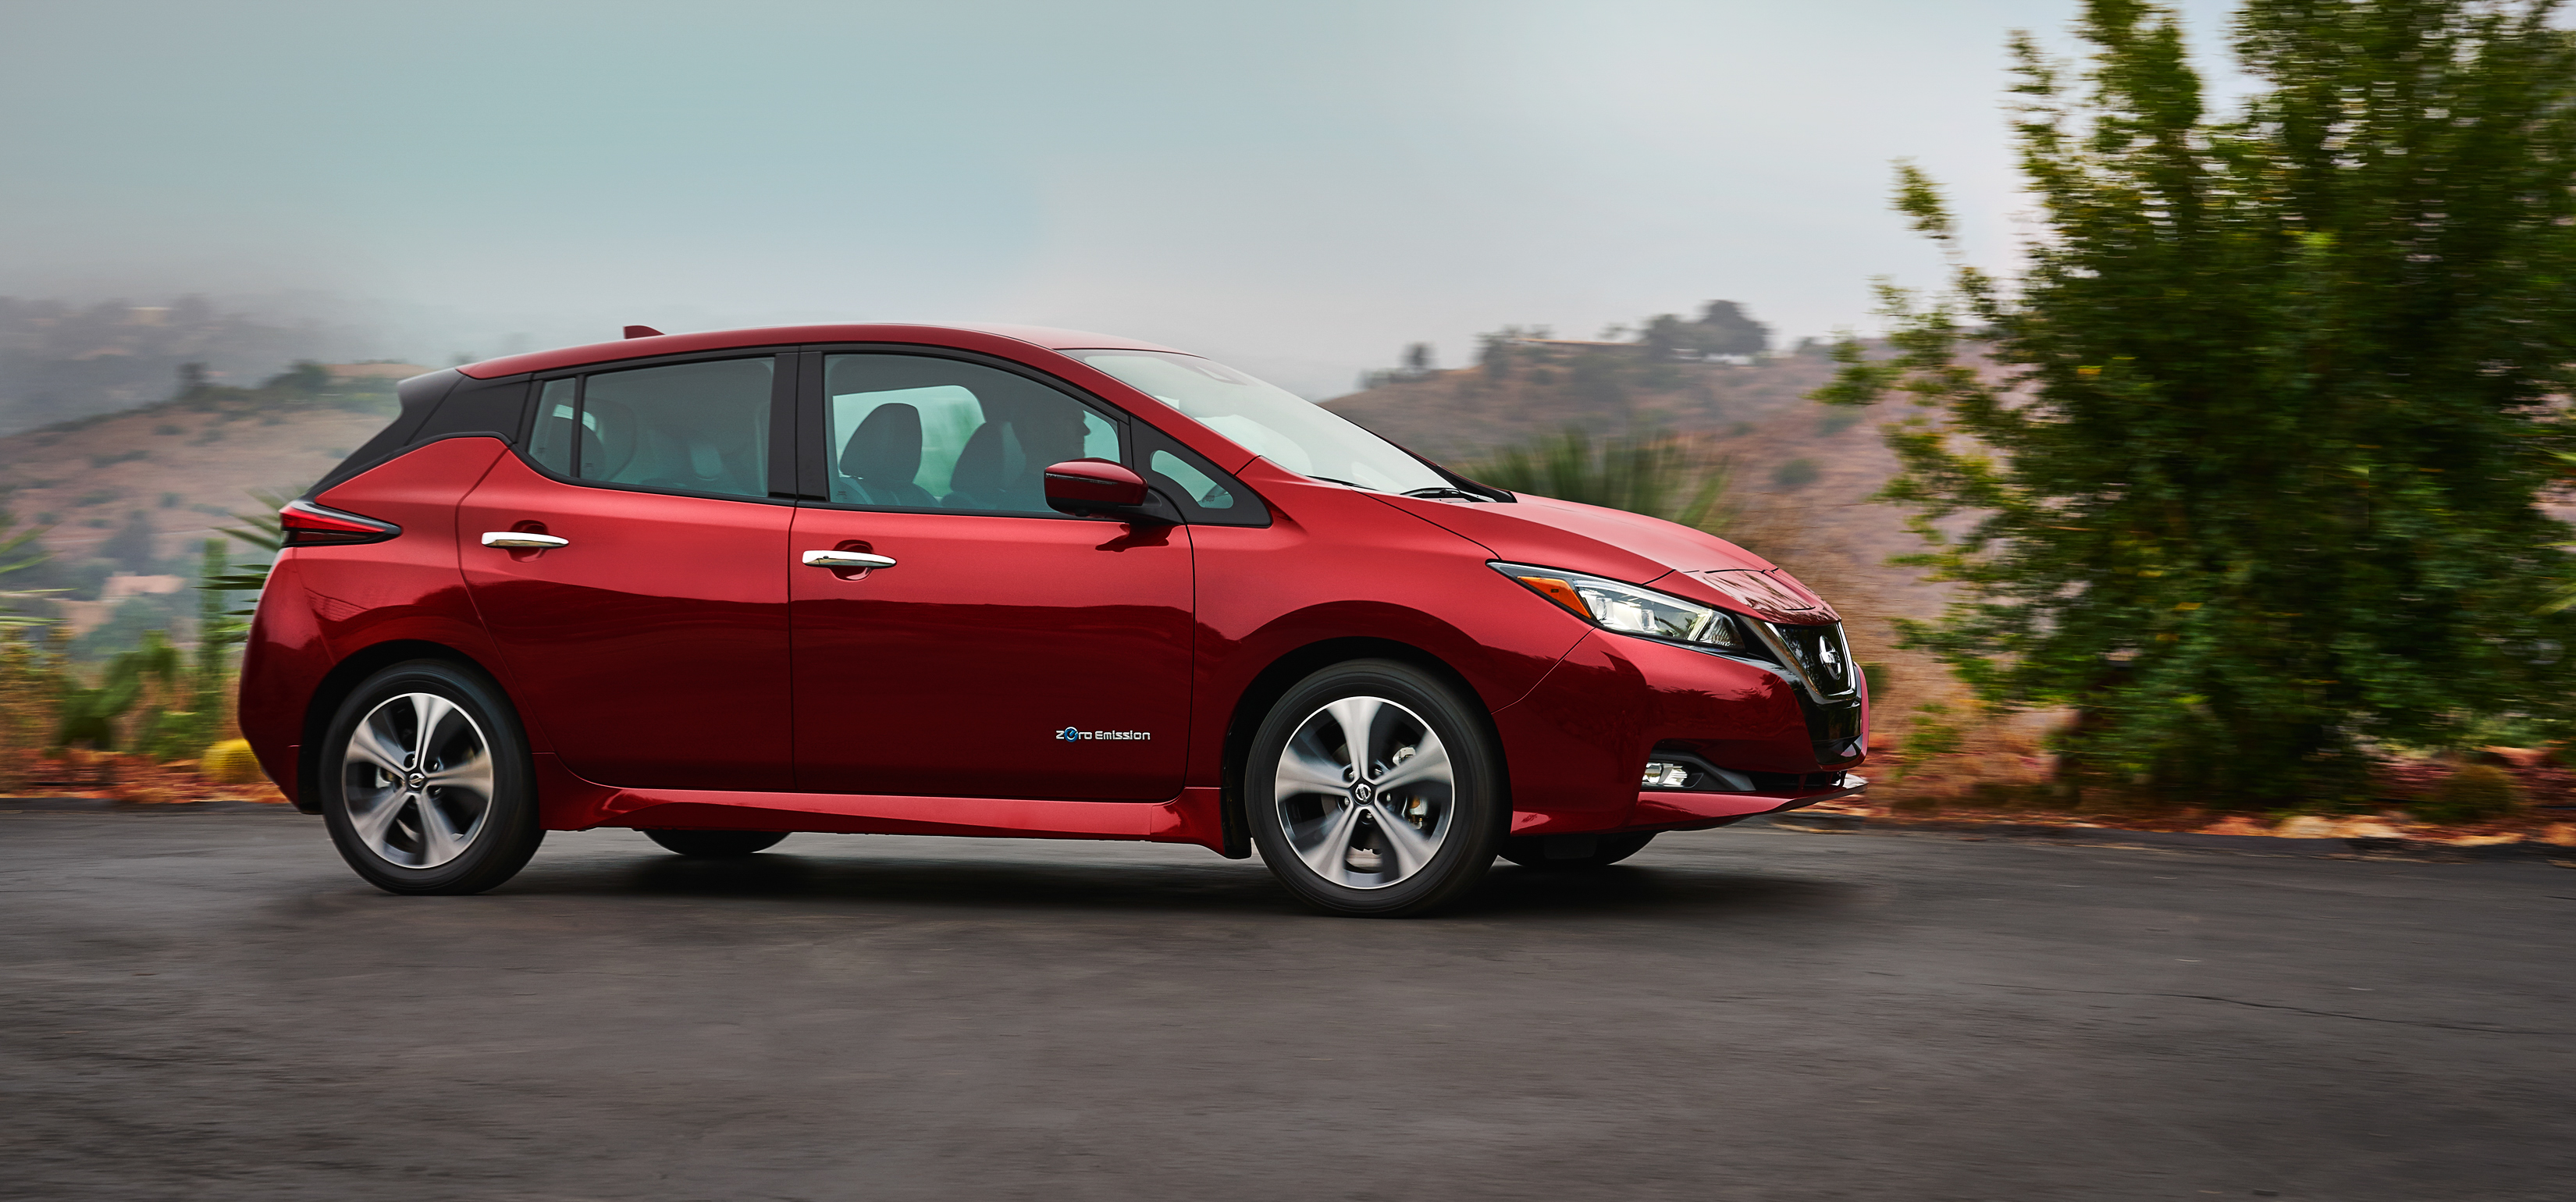 2018 Nissan LEAF more range content and technology for a lower